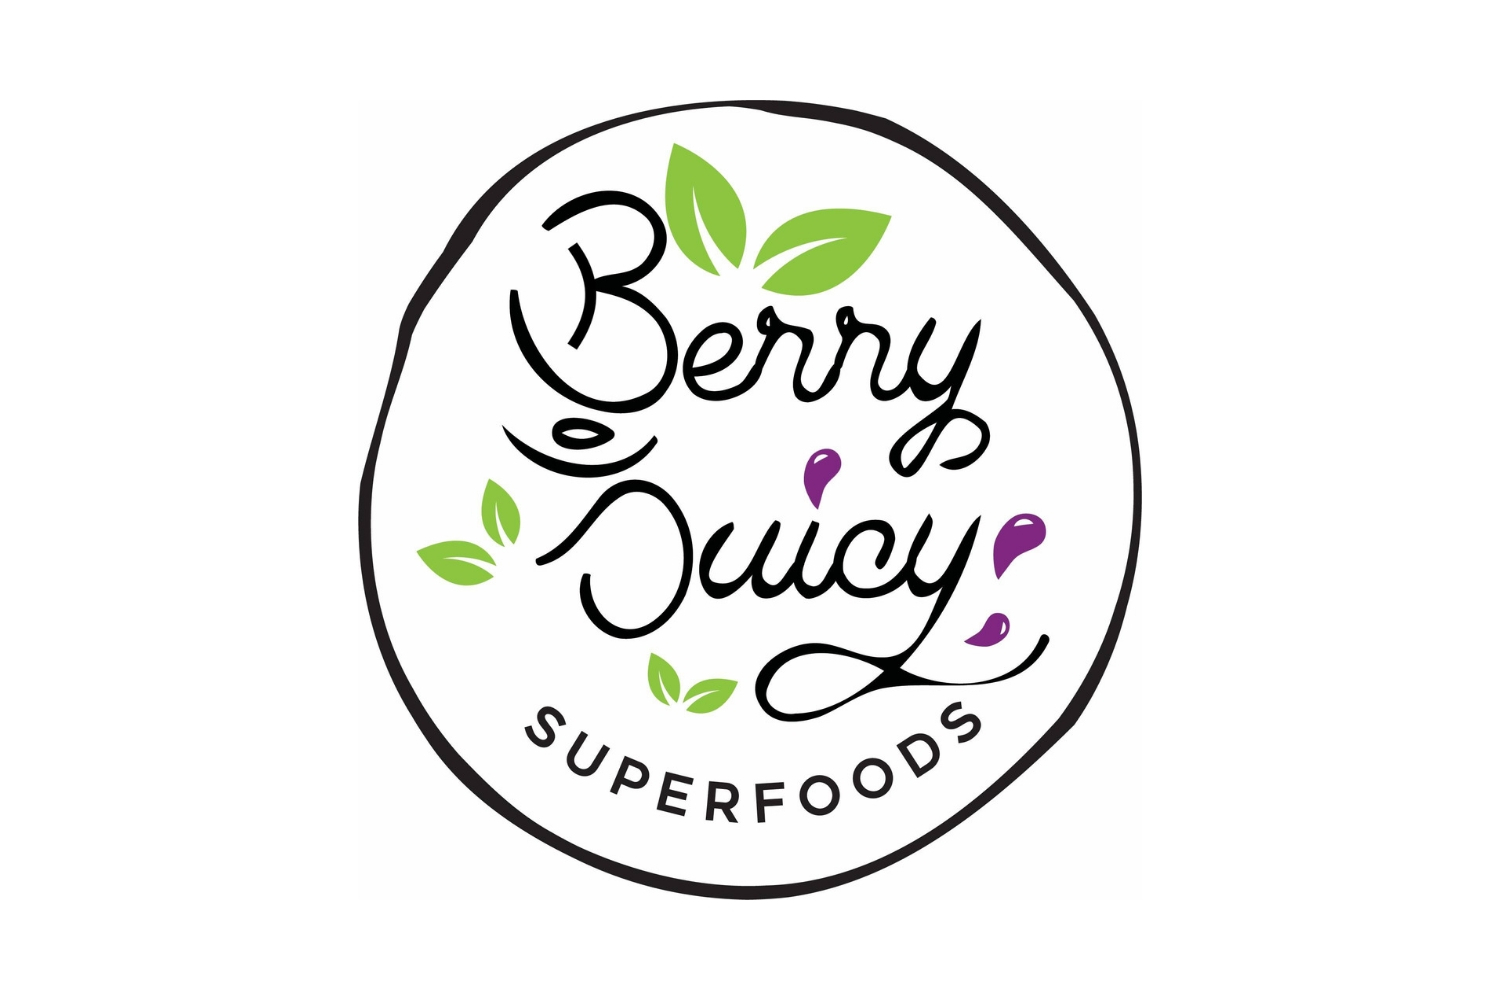 Berry Juicy Superfoods Coomera